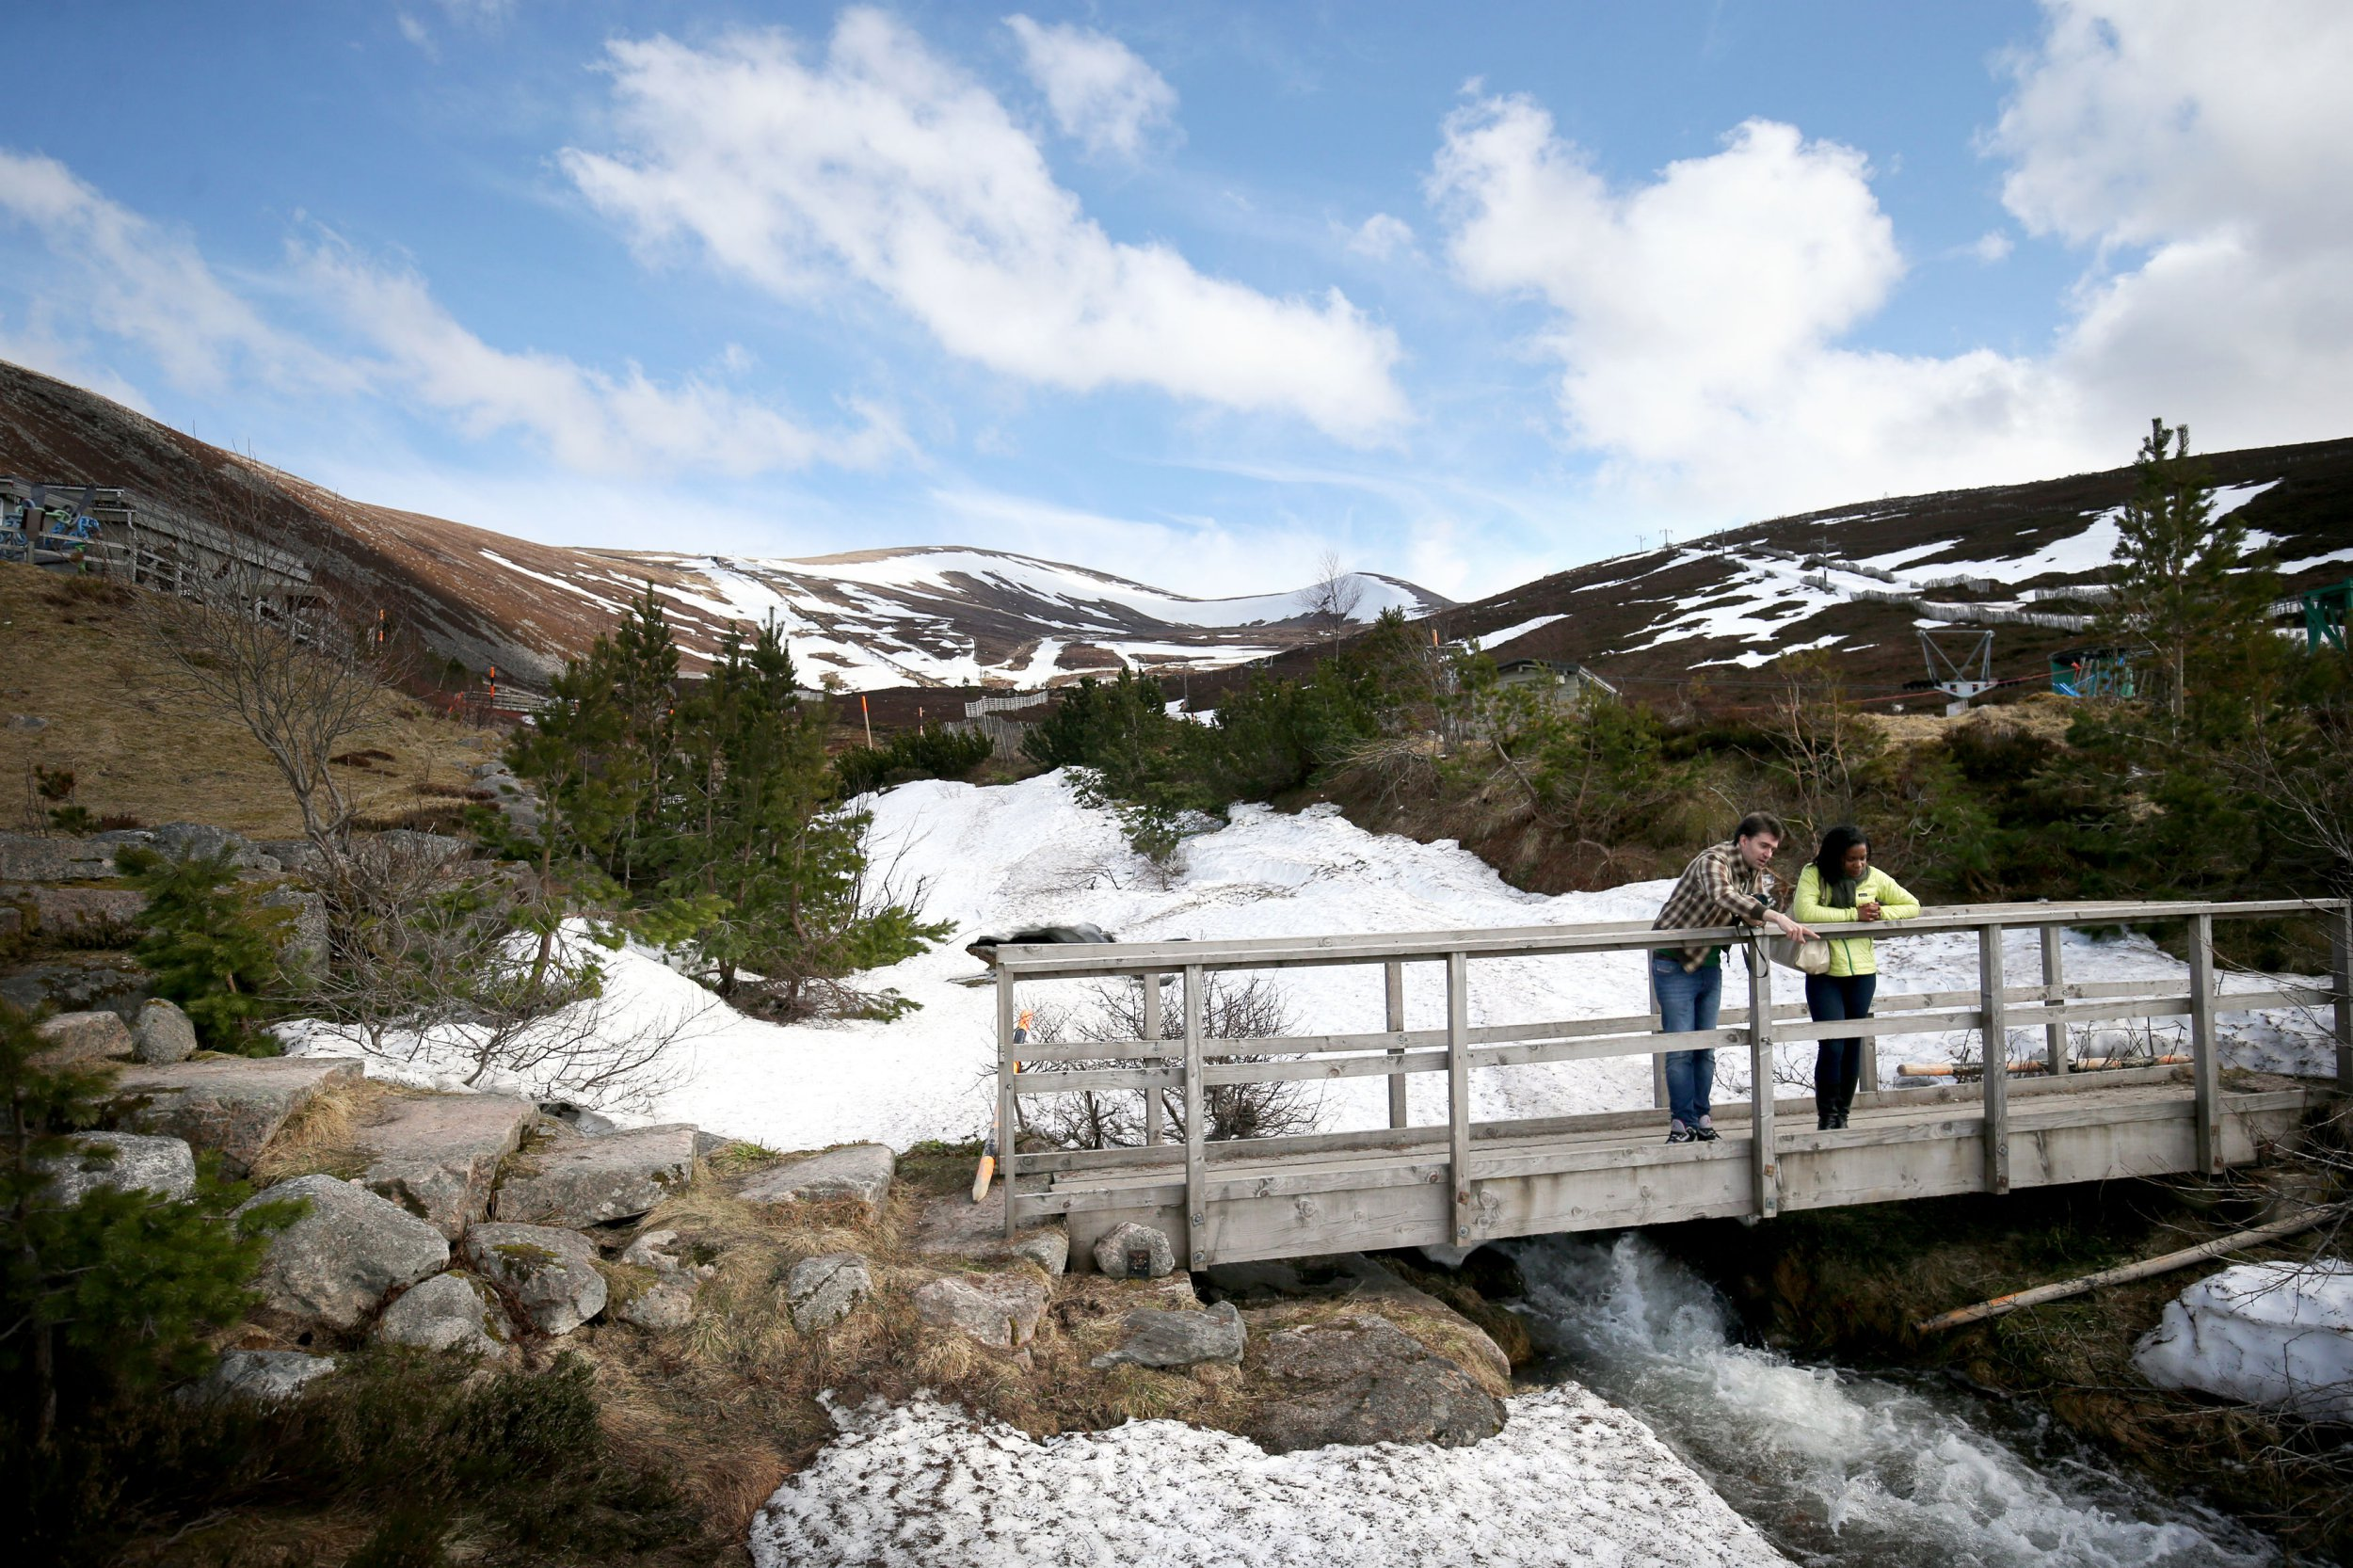 Visitors on a bridge next to one of the few remaining patches of snow on the Cairngorm Mountain near Aviemore, Scotland. PRESS ASSOCIATION Photo. Picture date: Thursday April 19, 2018. Photo credit should read: Jane Barlow/PA Wire